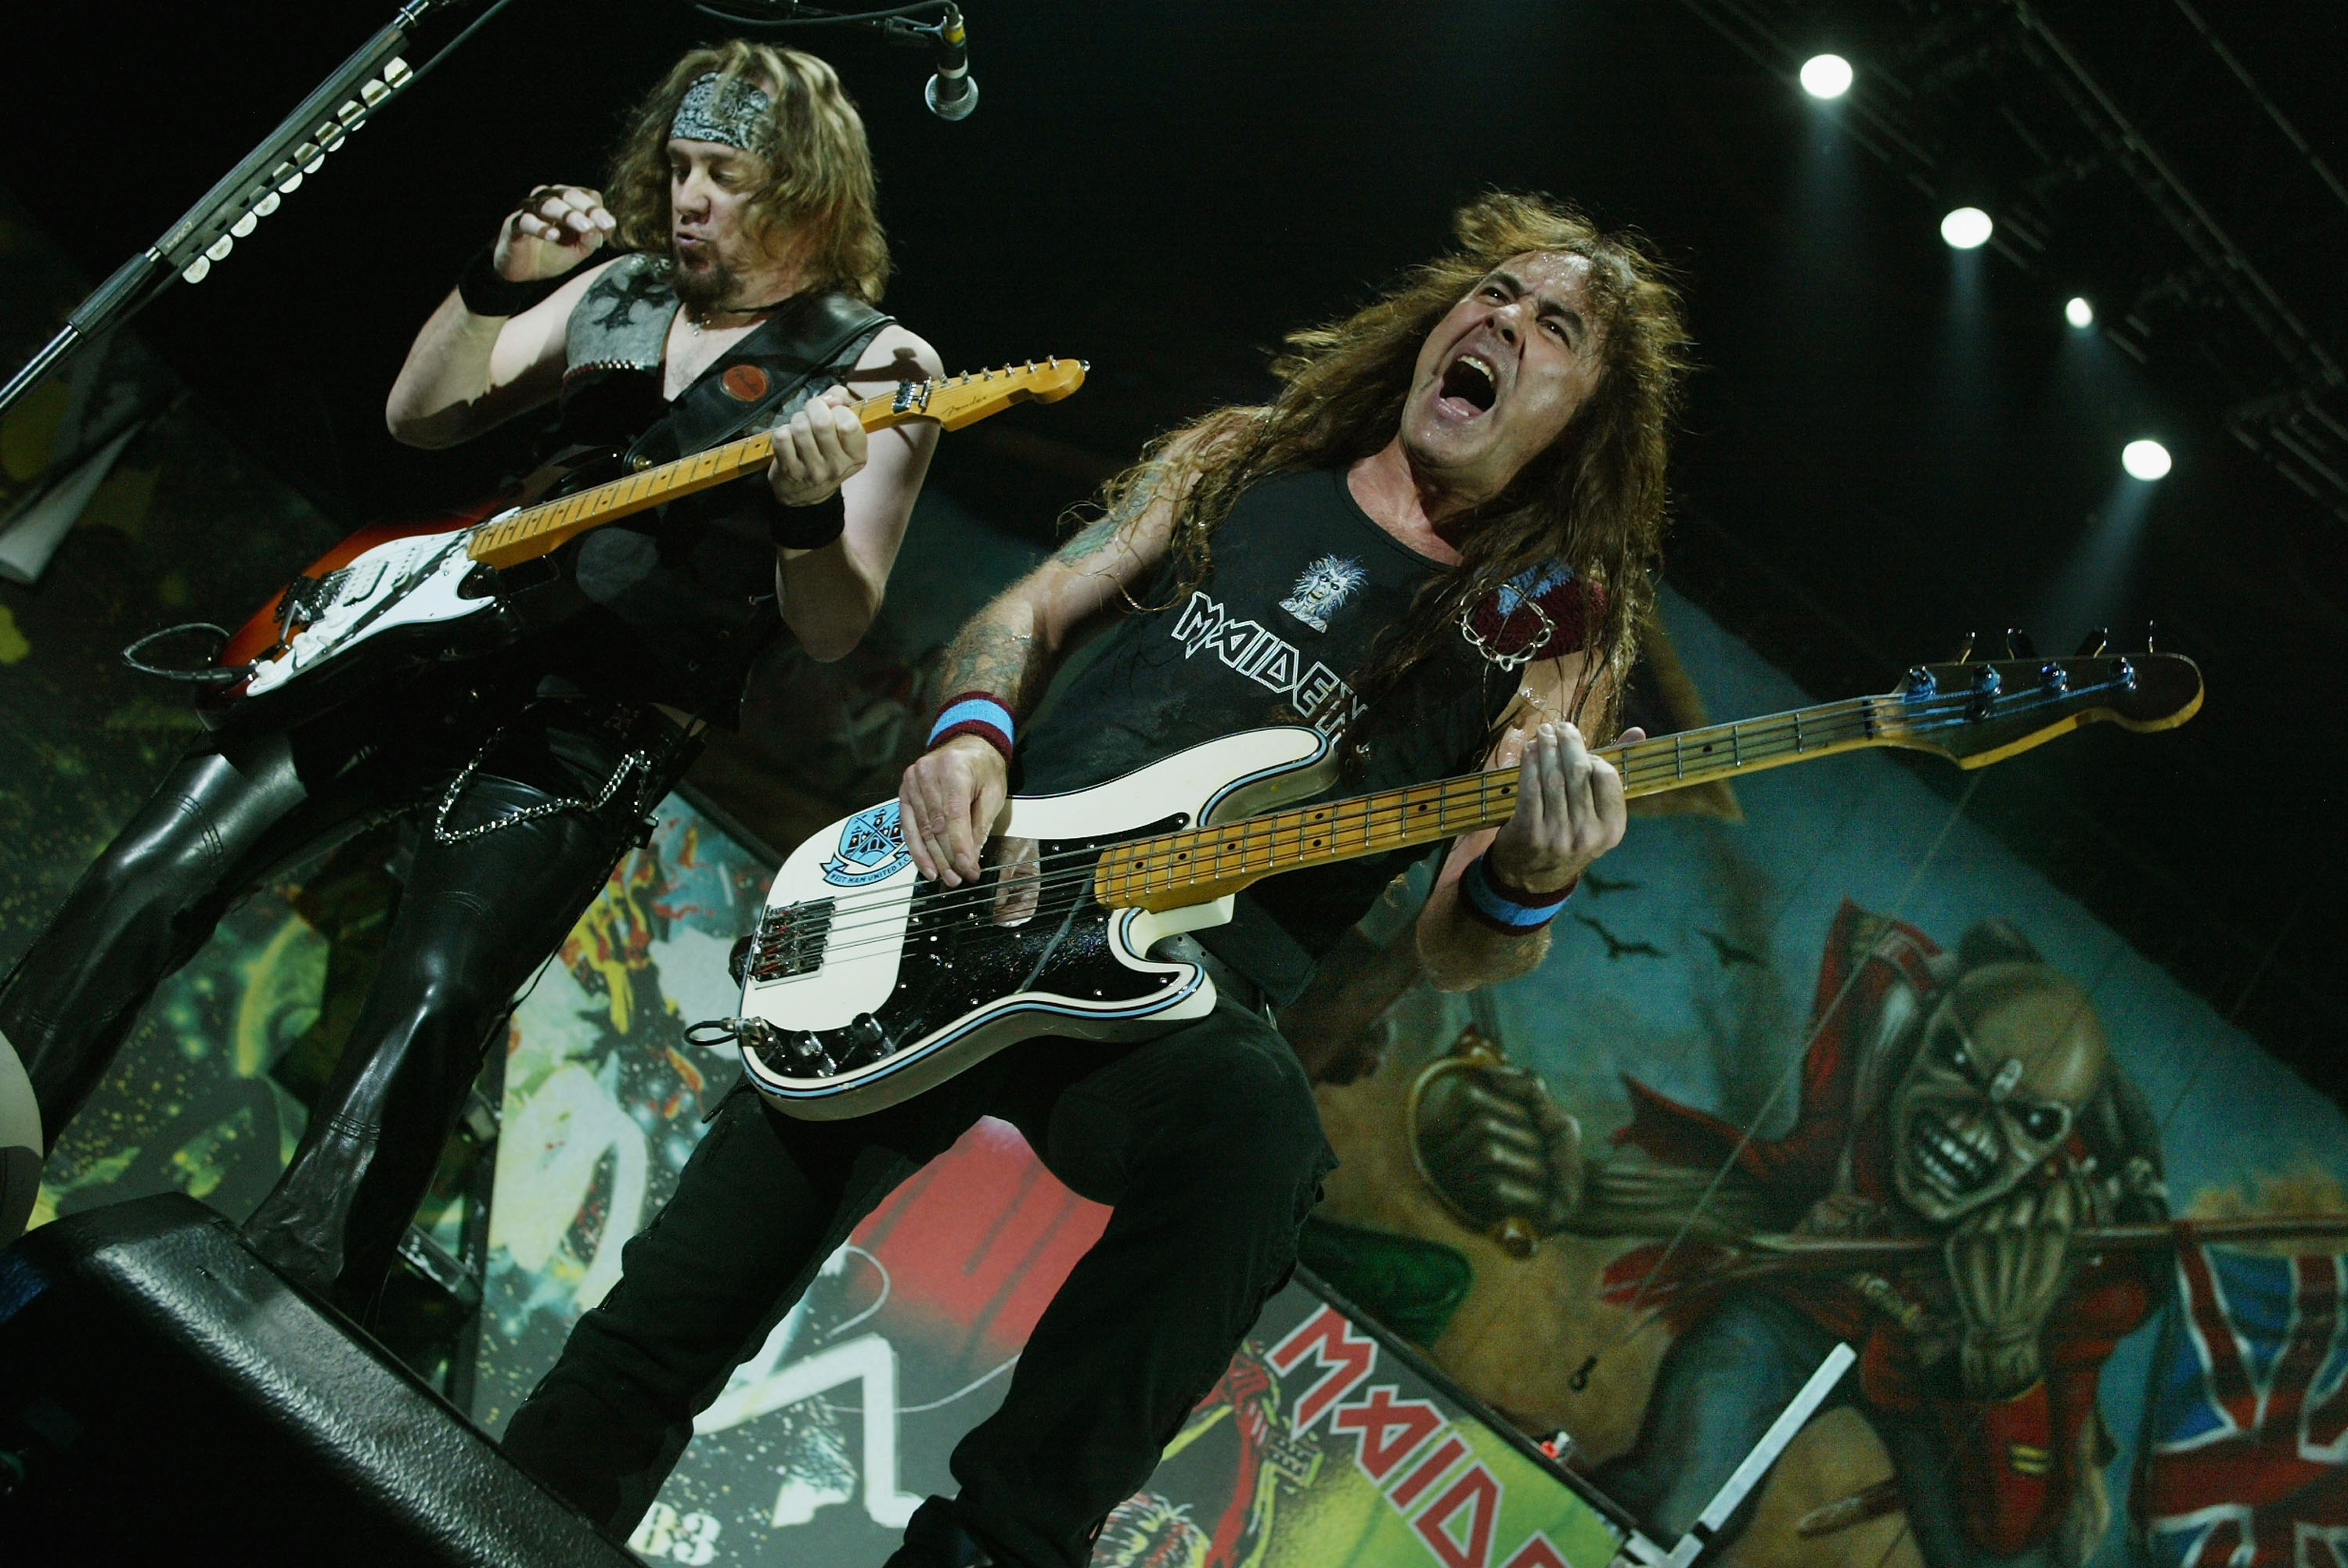 Iron Maiden's Steve Harris Looks Back on NWOBHM Pioneers' Classic Albums